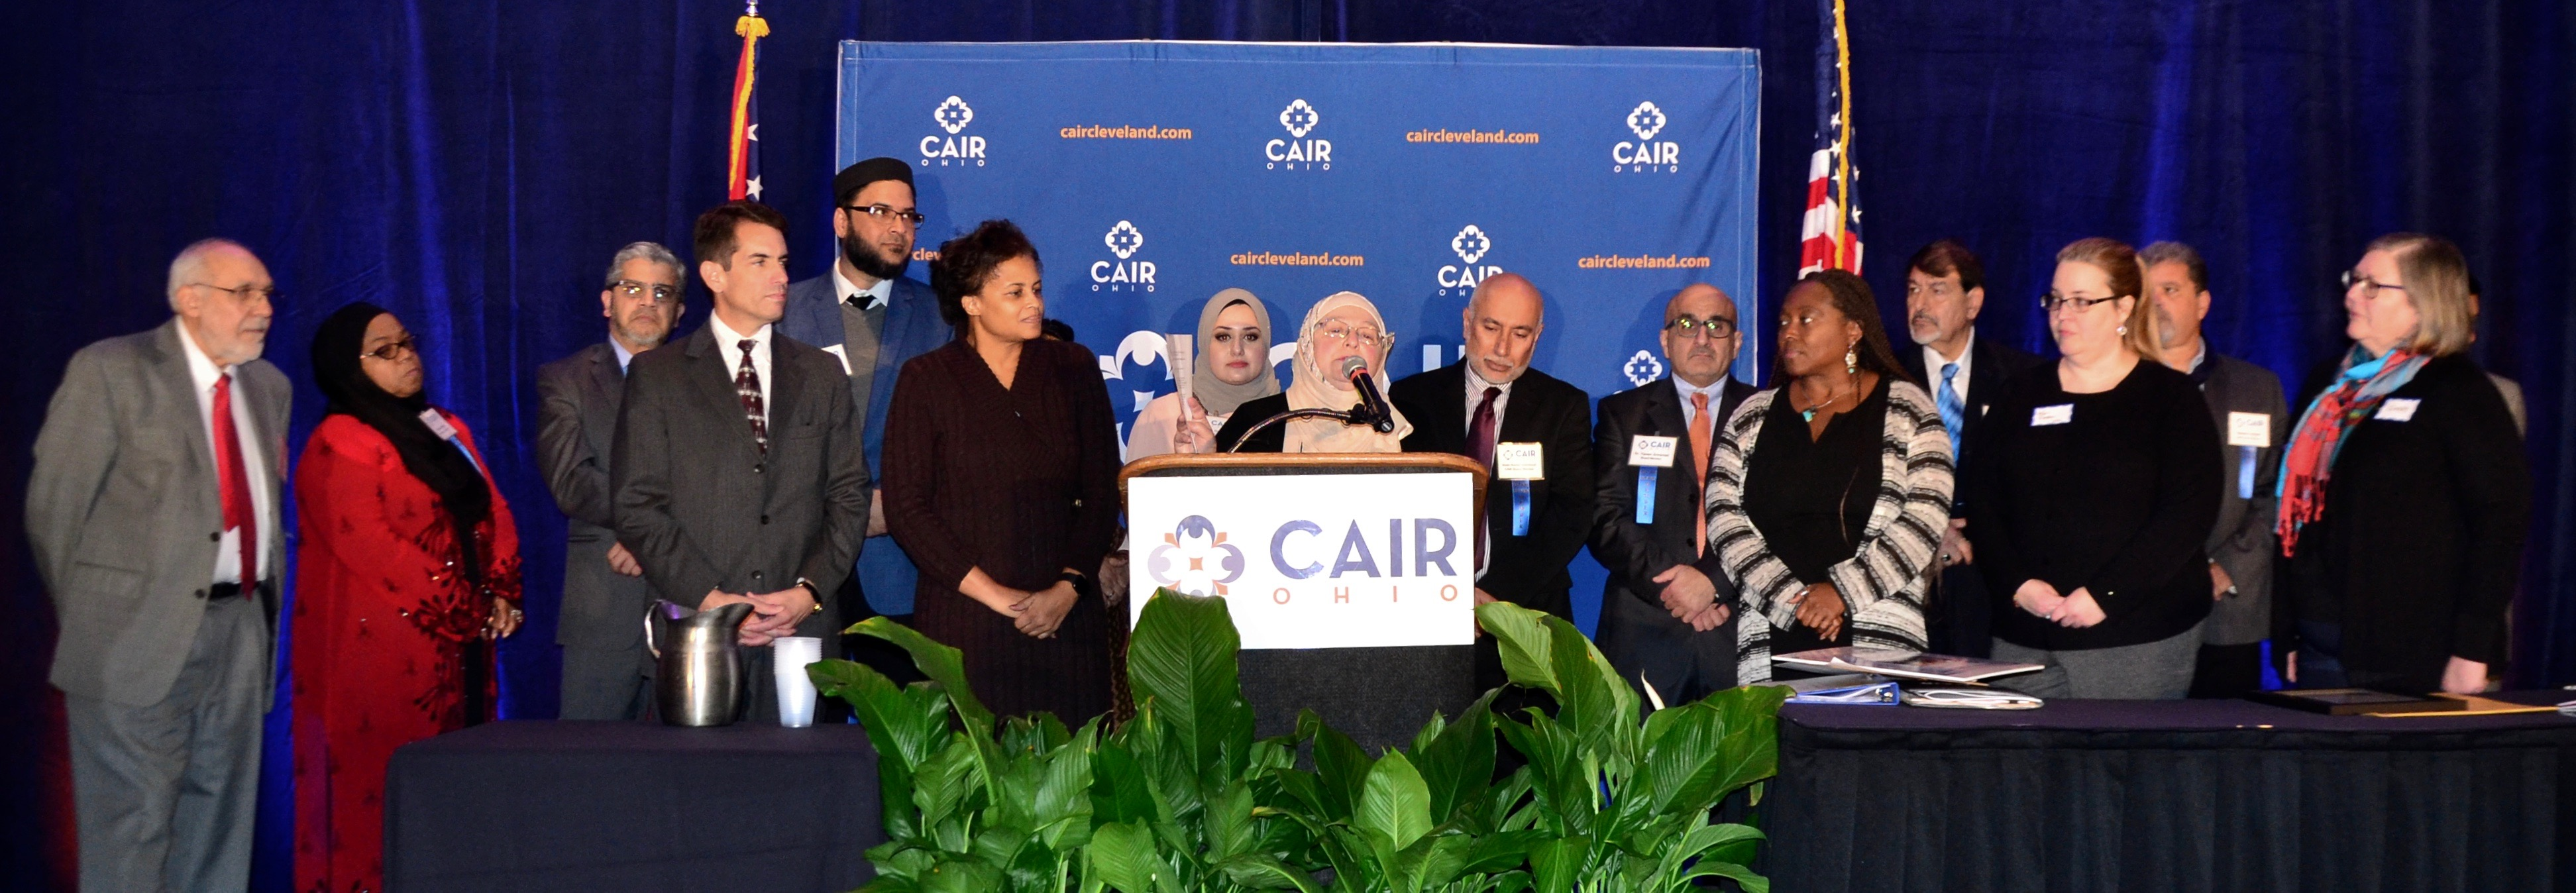 CAIR CLE board & UCC staff 11/3/19